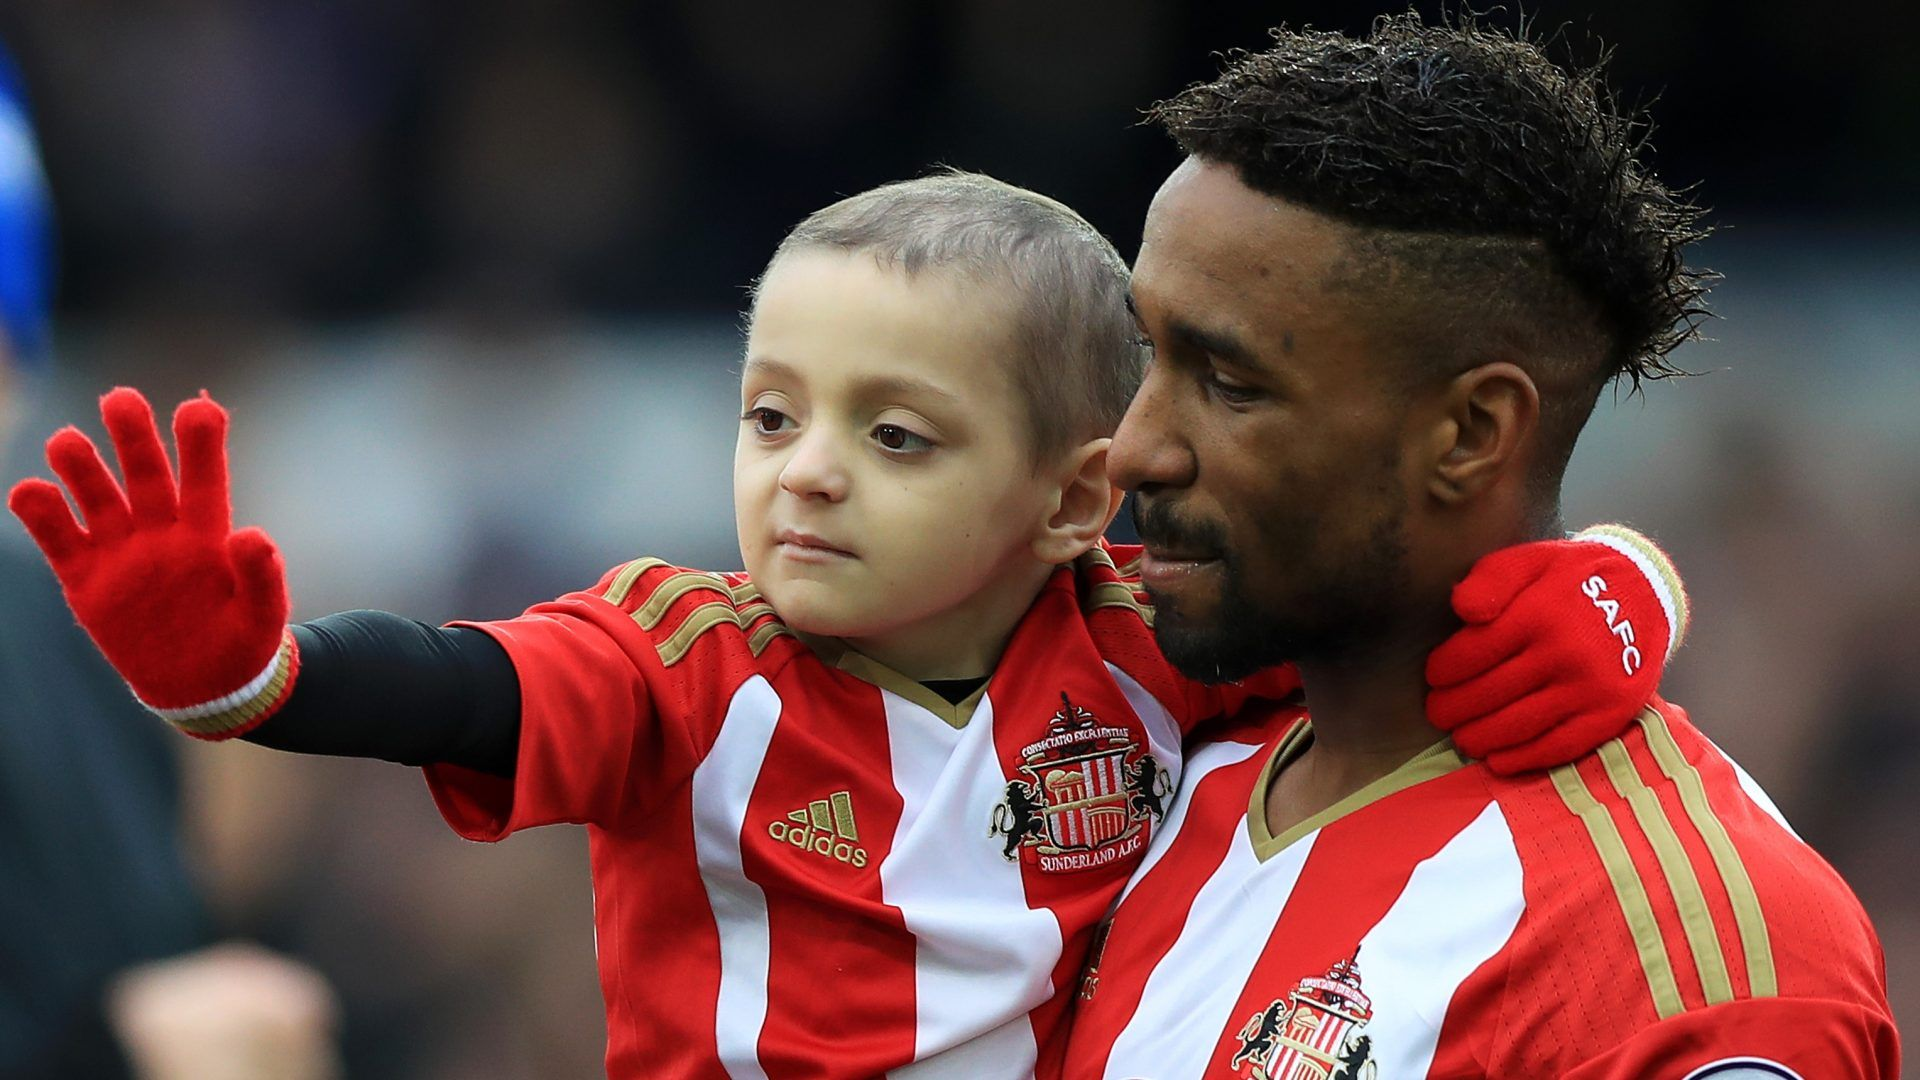 Bradley Lowery to be honoured at BBC Sports Personality of